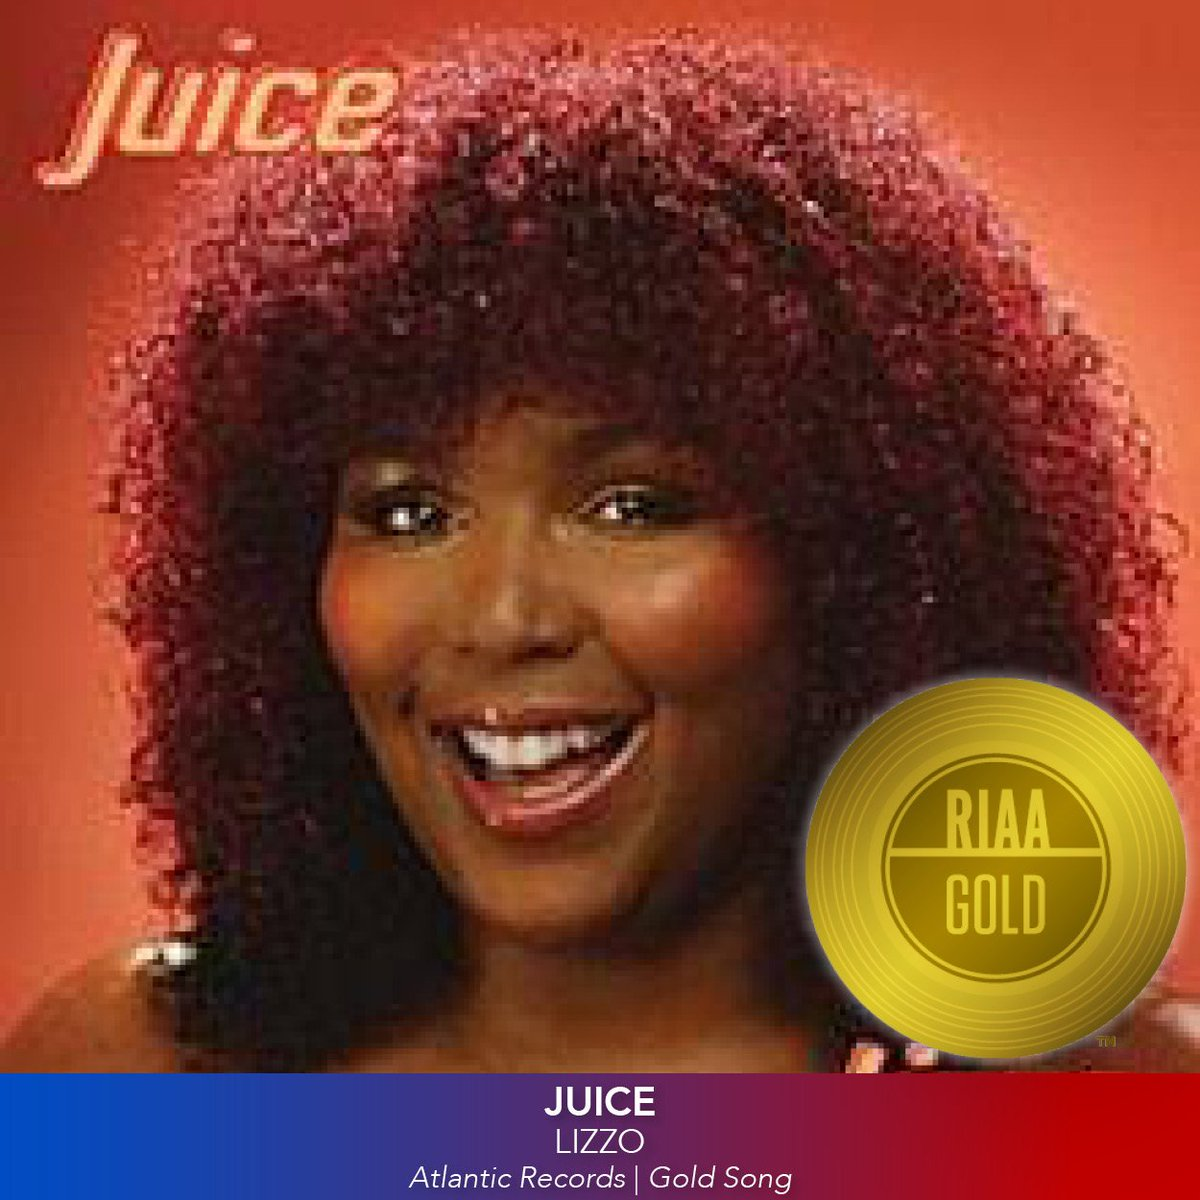 Congratulations to @Lizzo! #TruthHurts is Platinum and #GoodAsHell and #Juice are Gold! @AtlanticRecords 💯